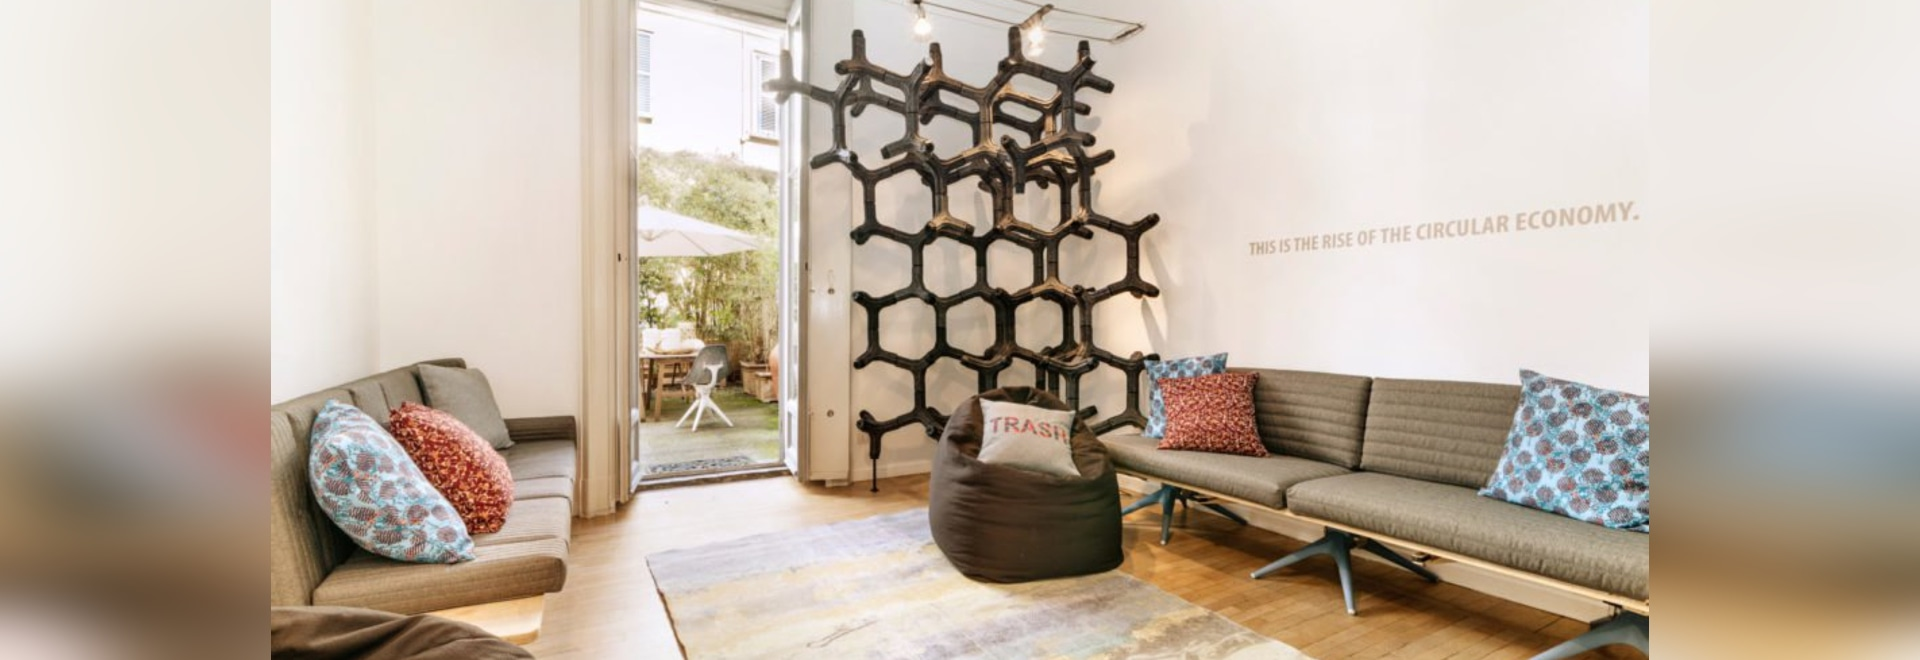 'House of Trash' proves how waste can transform into beautiful home design